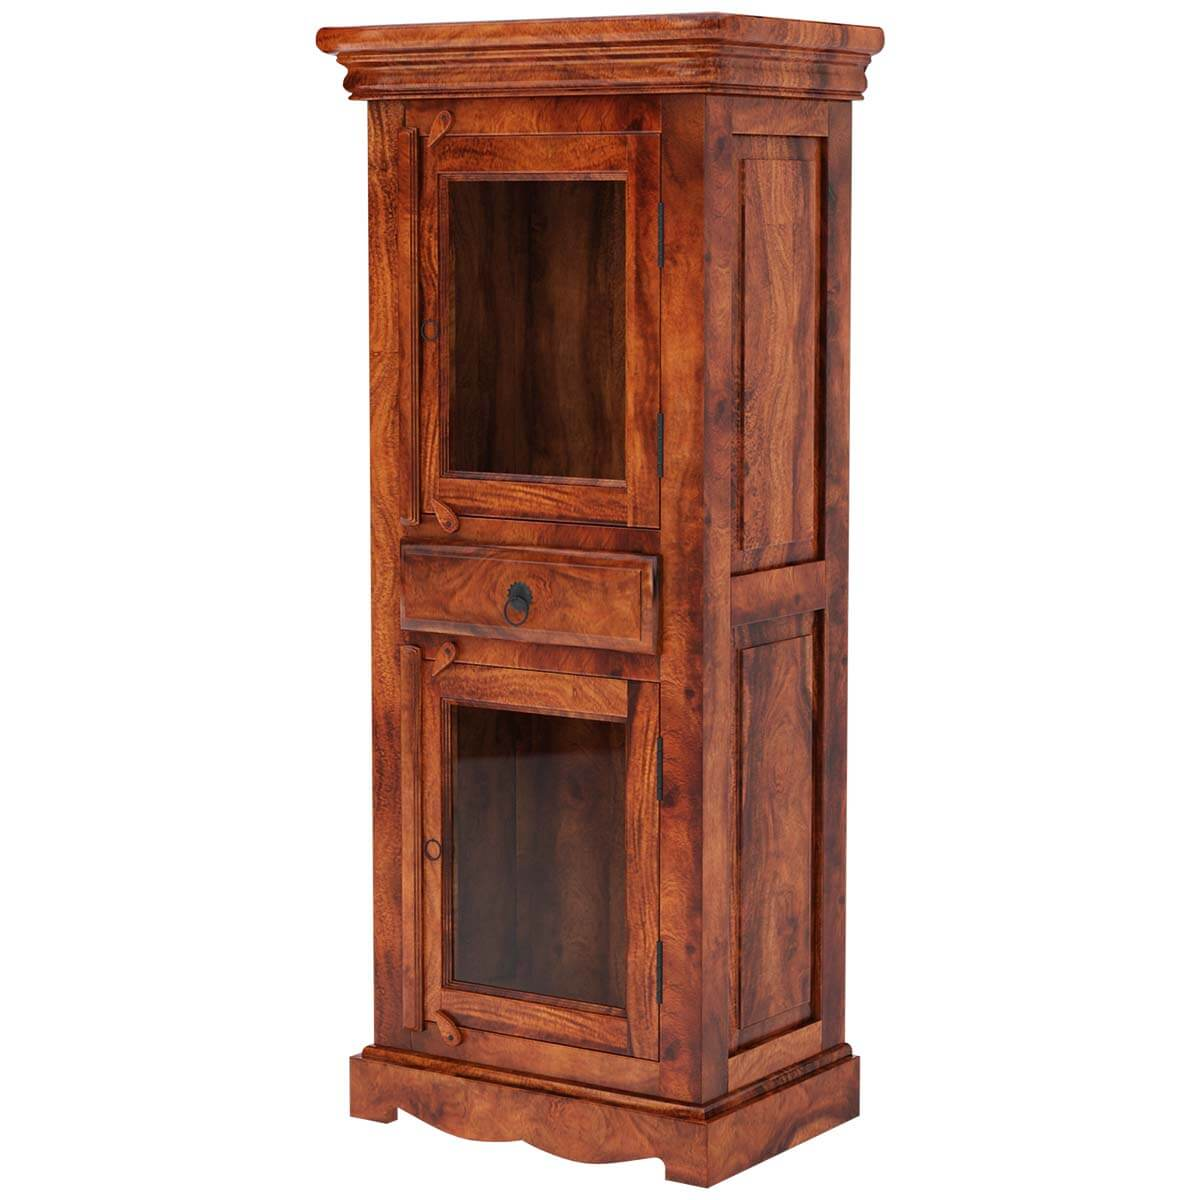 Solid Wood Closet Cabinets Livingston Solid Wood Rustic Wardrobe Armoire Cabinet Rustic Solid